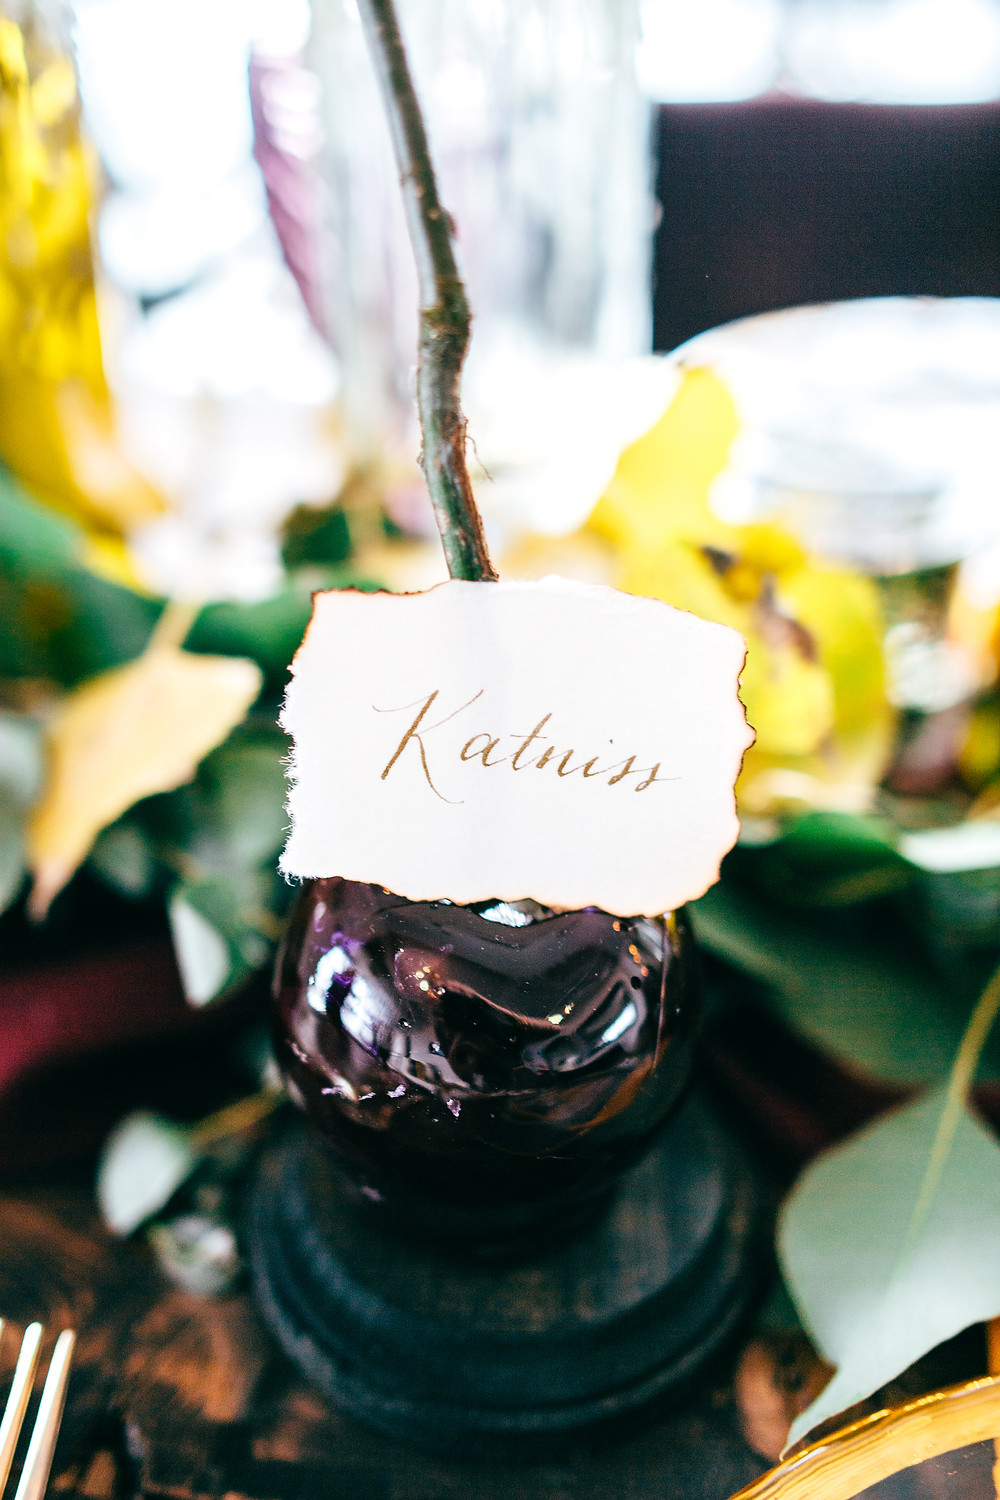 Dark & Moody Post-Apocalyptic Wedding Candy Apple and Calligraphy Place Cards